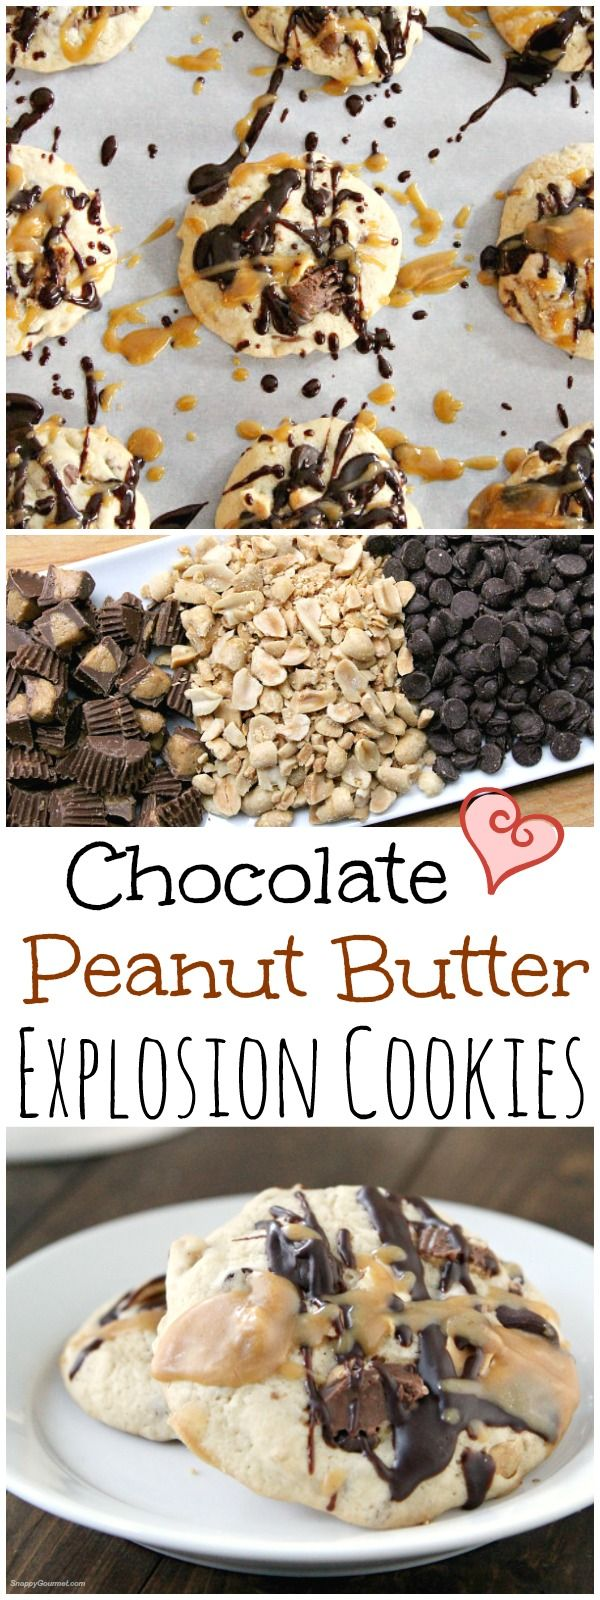 Chocolate Peanut Butter Explosion Cookies - easy holiday or Christmas cookie recipe with @countrycrock ! http://SnappyGourmet.com #ad #MakeItYours